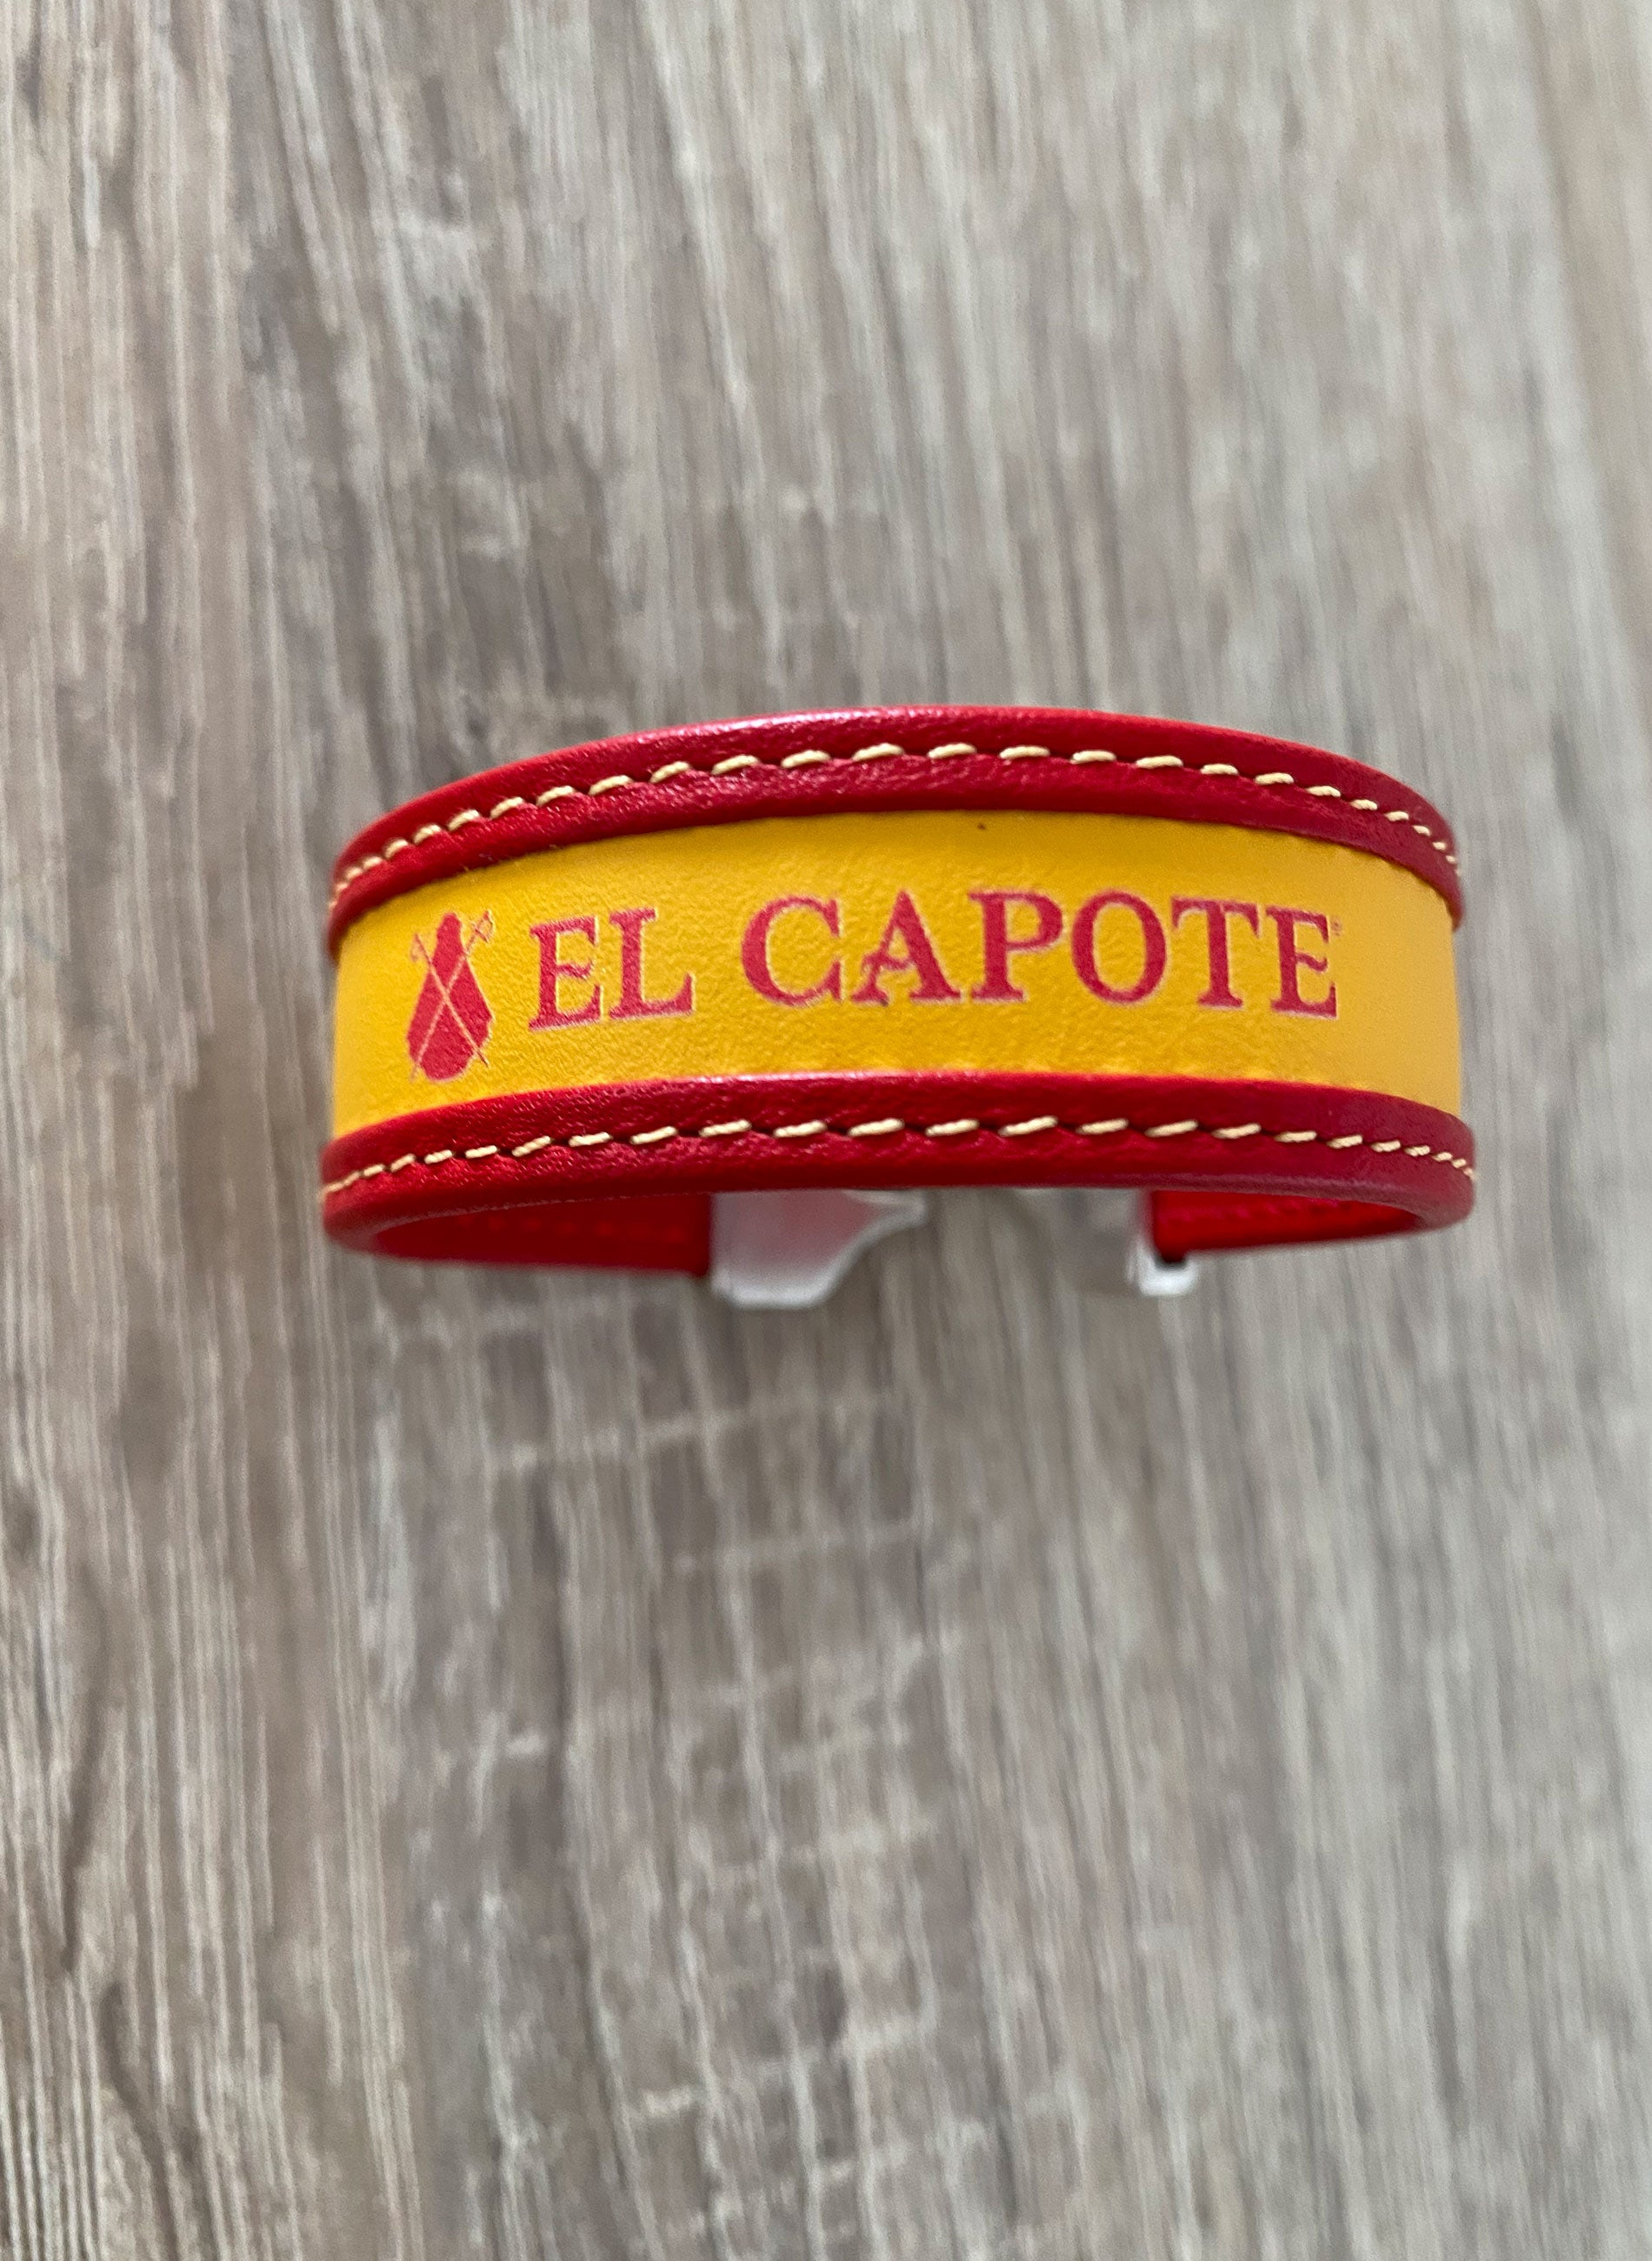 Spain Men's Leather Bracelet